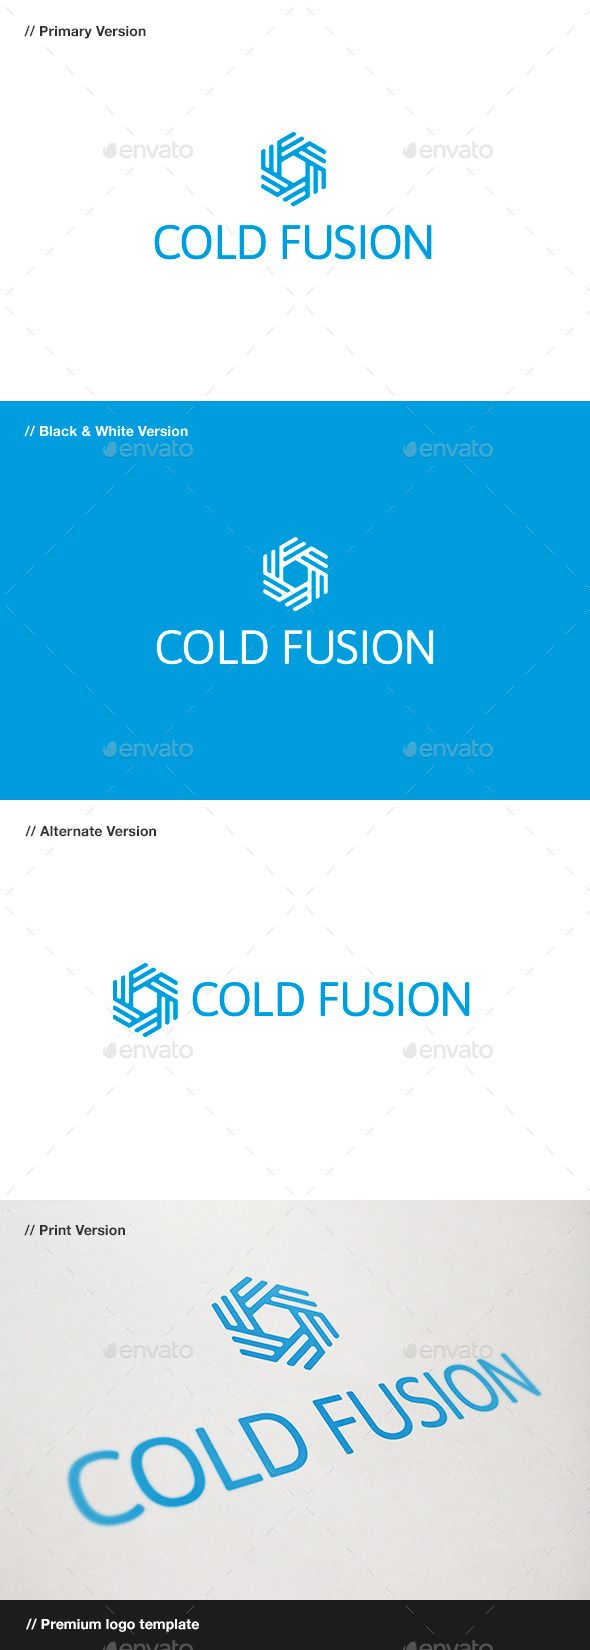 Cold Fusion Symbol - Logo Design Template Vector #logotype Download it here: http://graphicriver.net/item/cold-fusion-symbol-logo/10484539?s_rank=1536?ref=nexion